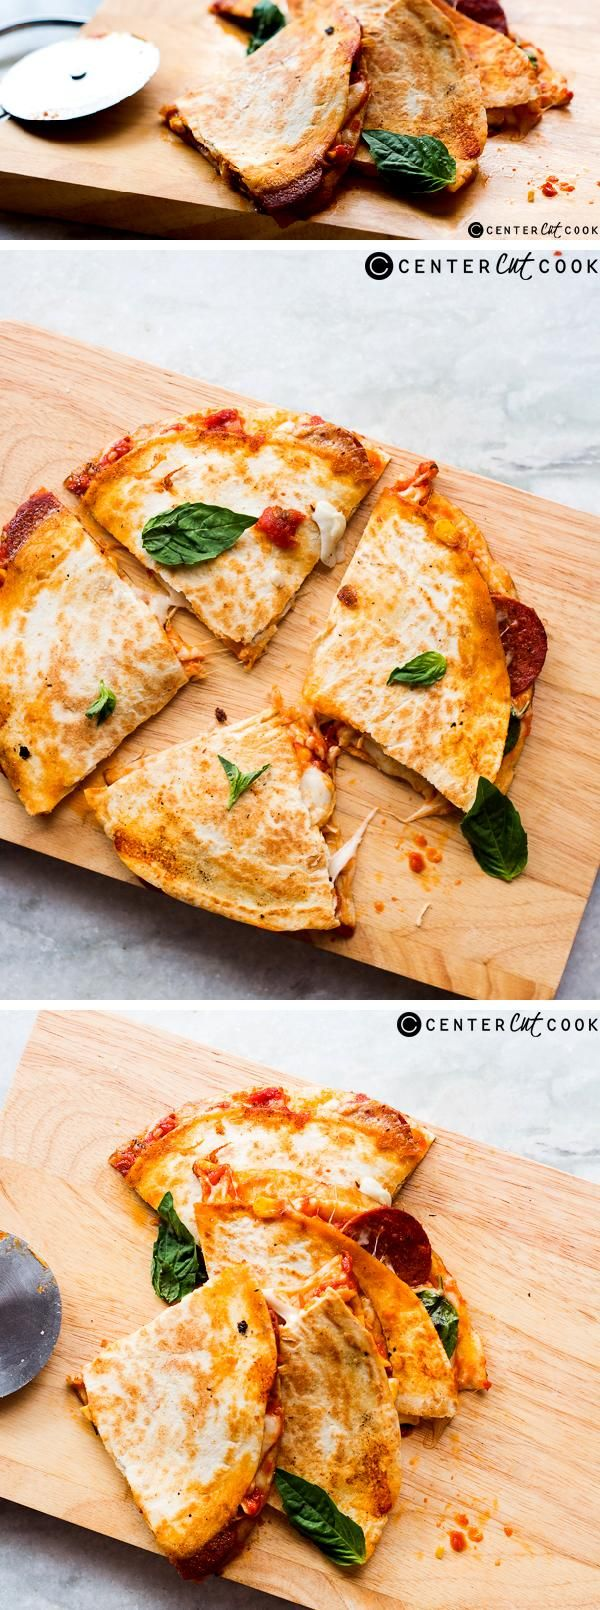 These pepperoni pizza quesadillas are the simplest meal that you can make with just five ingredients!